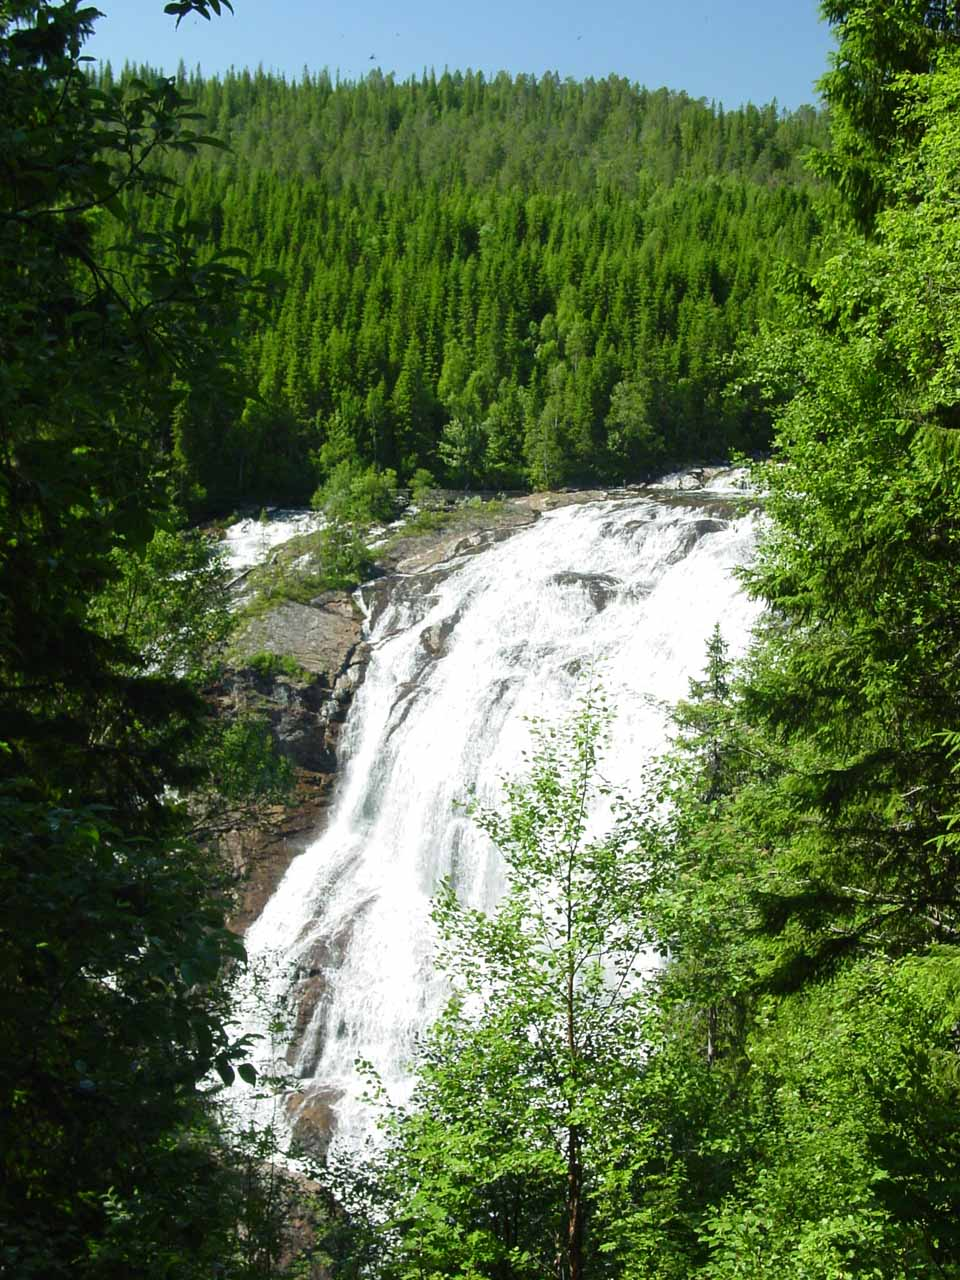 When I stood on the weather-worn picnic table, this was the view of Grongstadfossen that I got